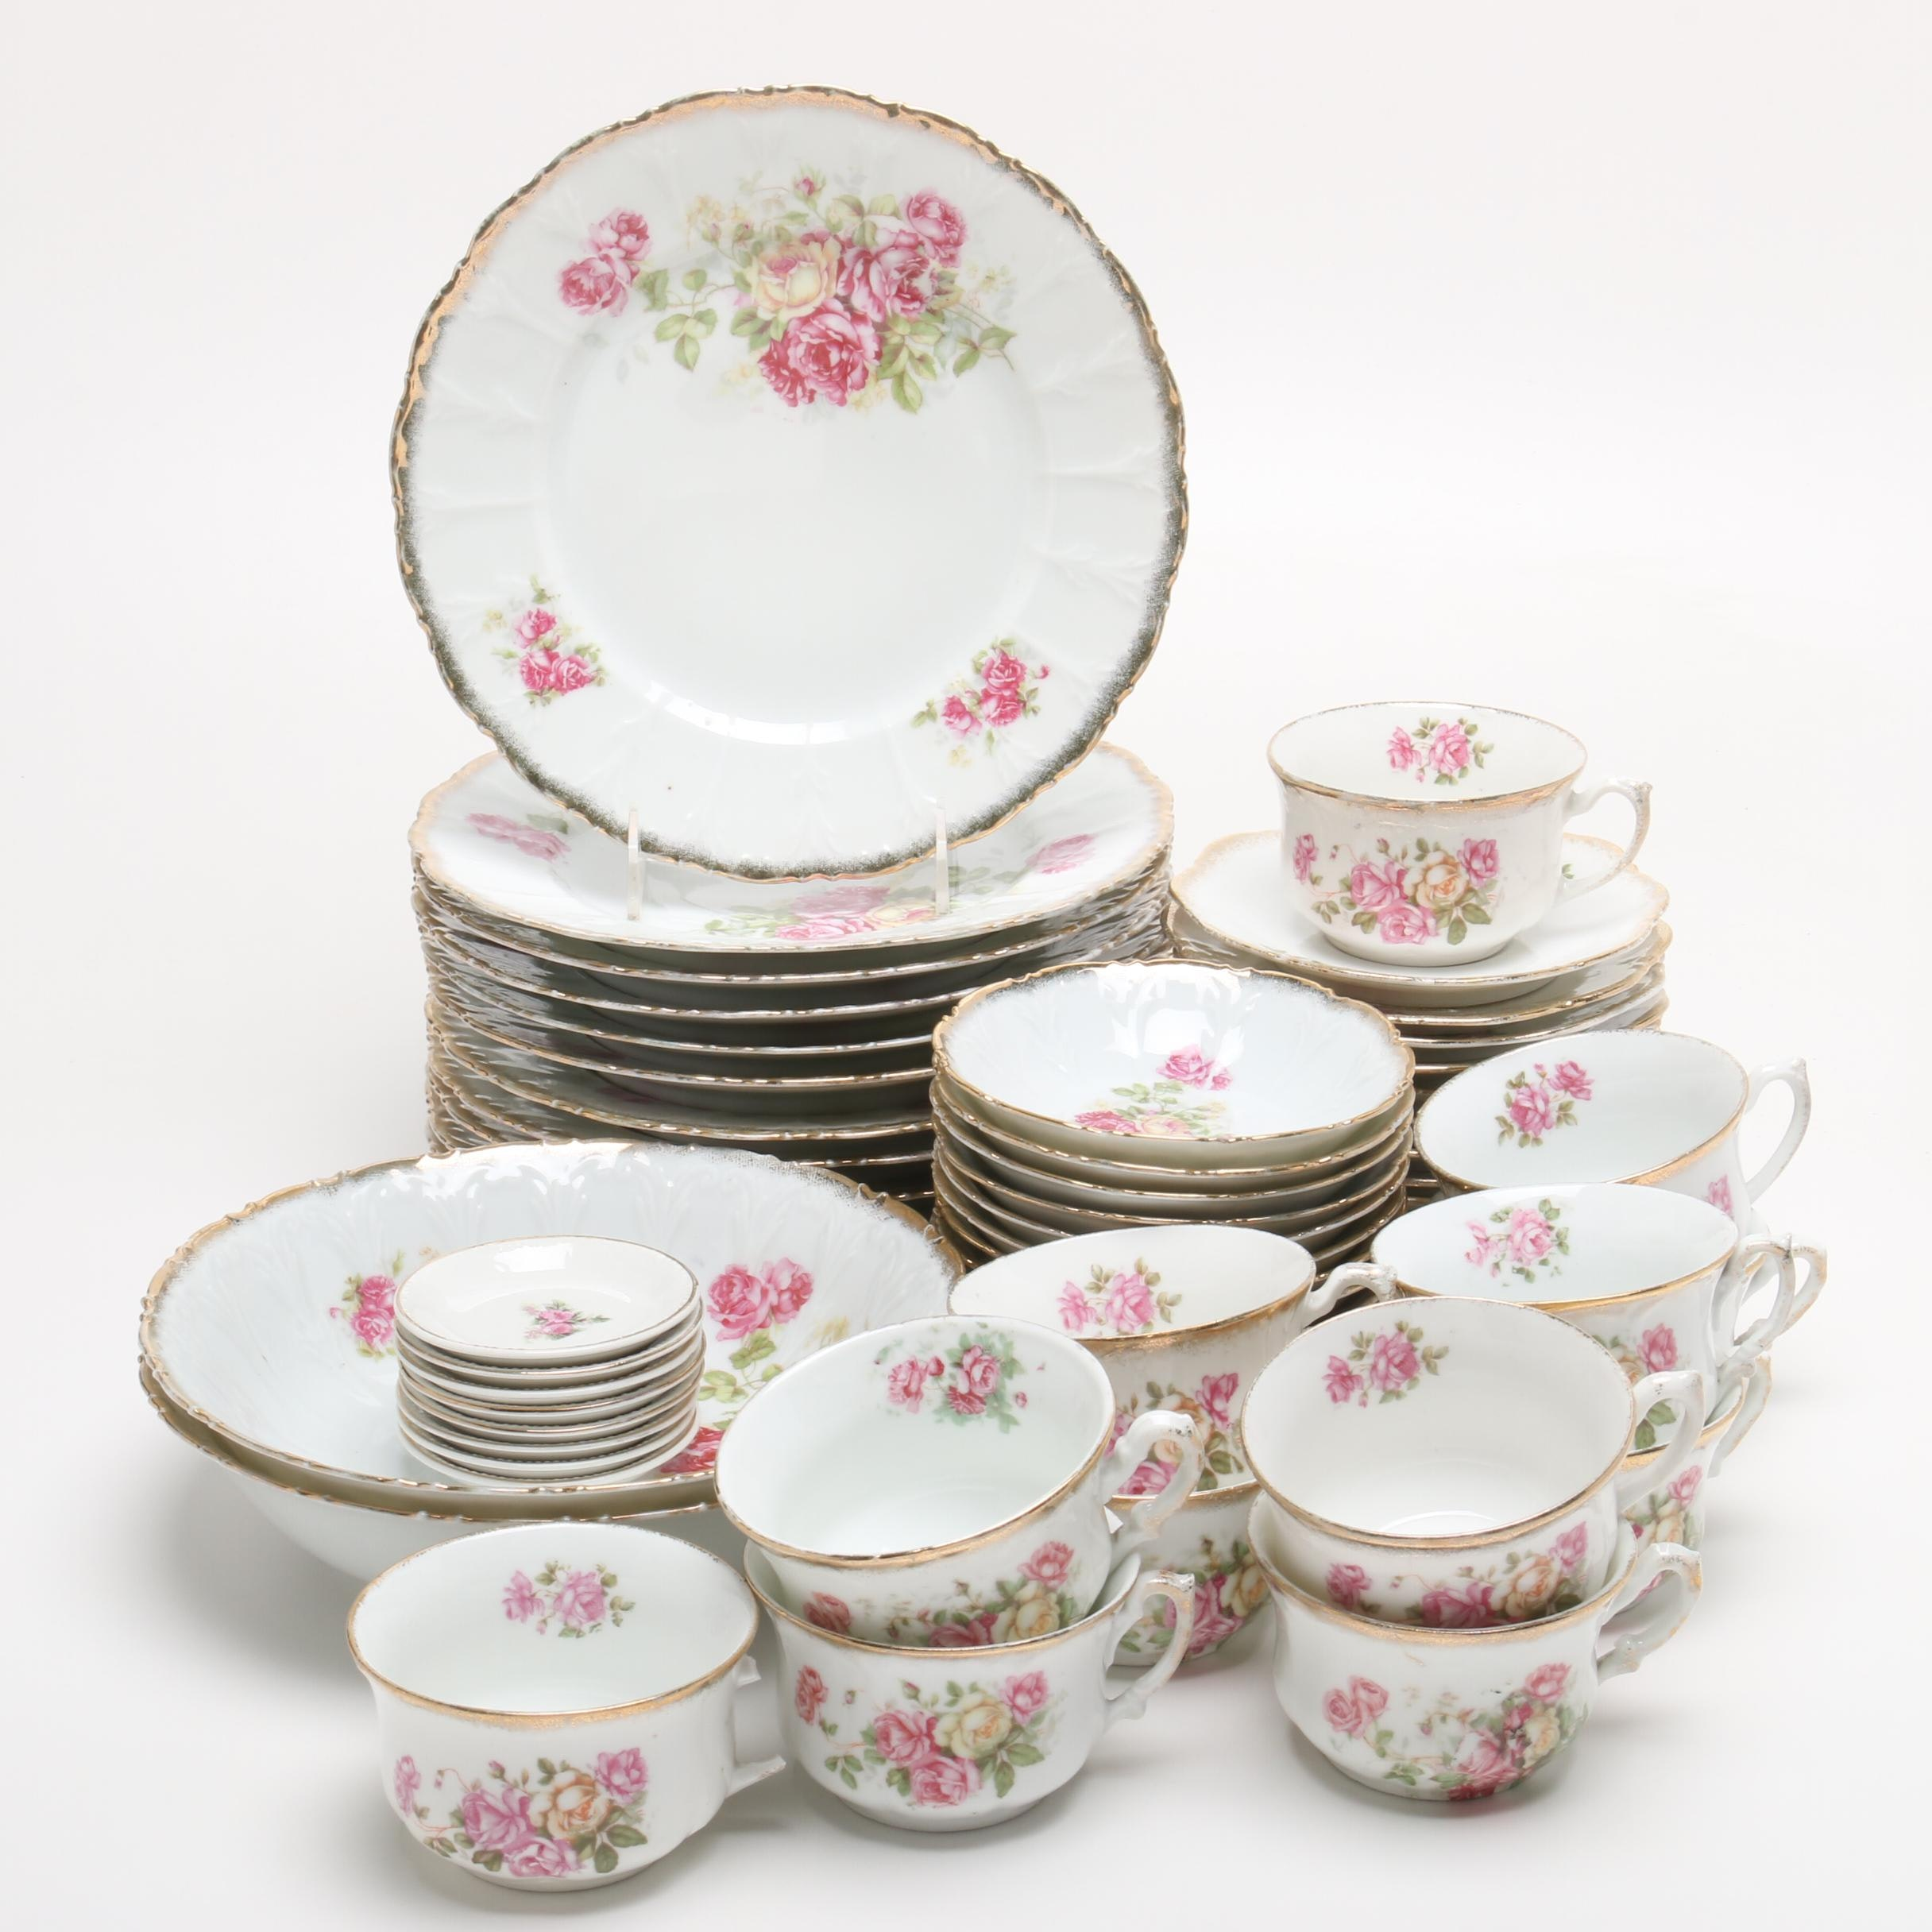 Porcelain Dinnerware including Carl Tielsch, Late 19th Century